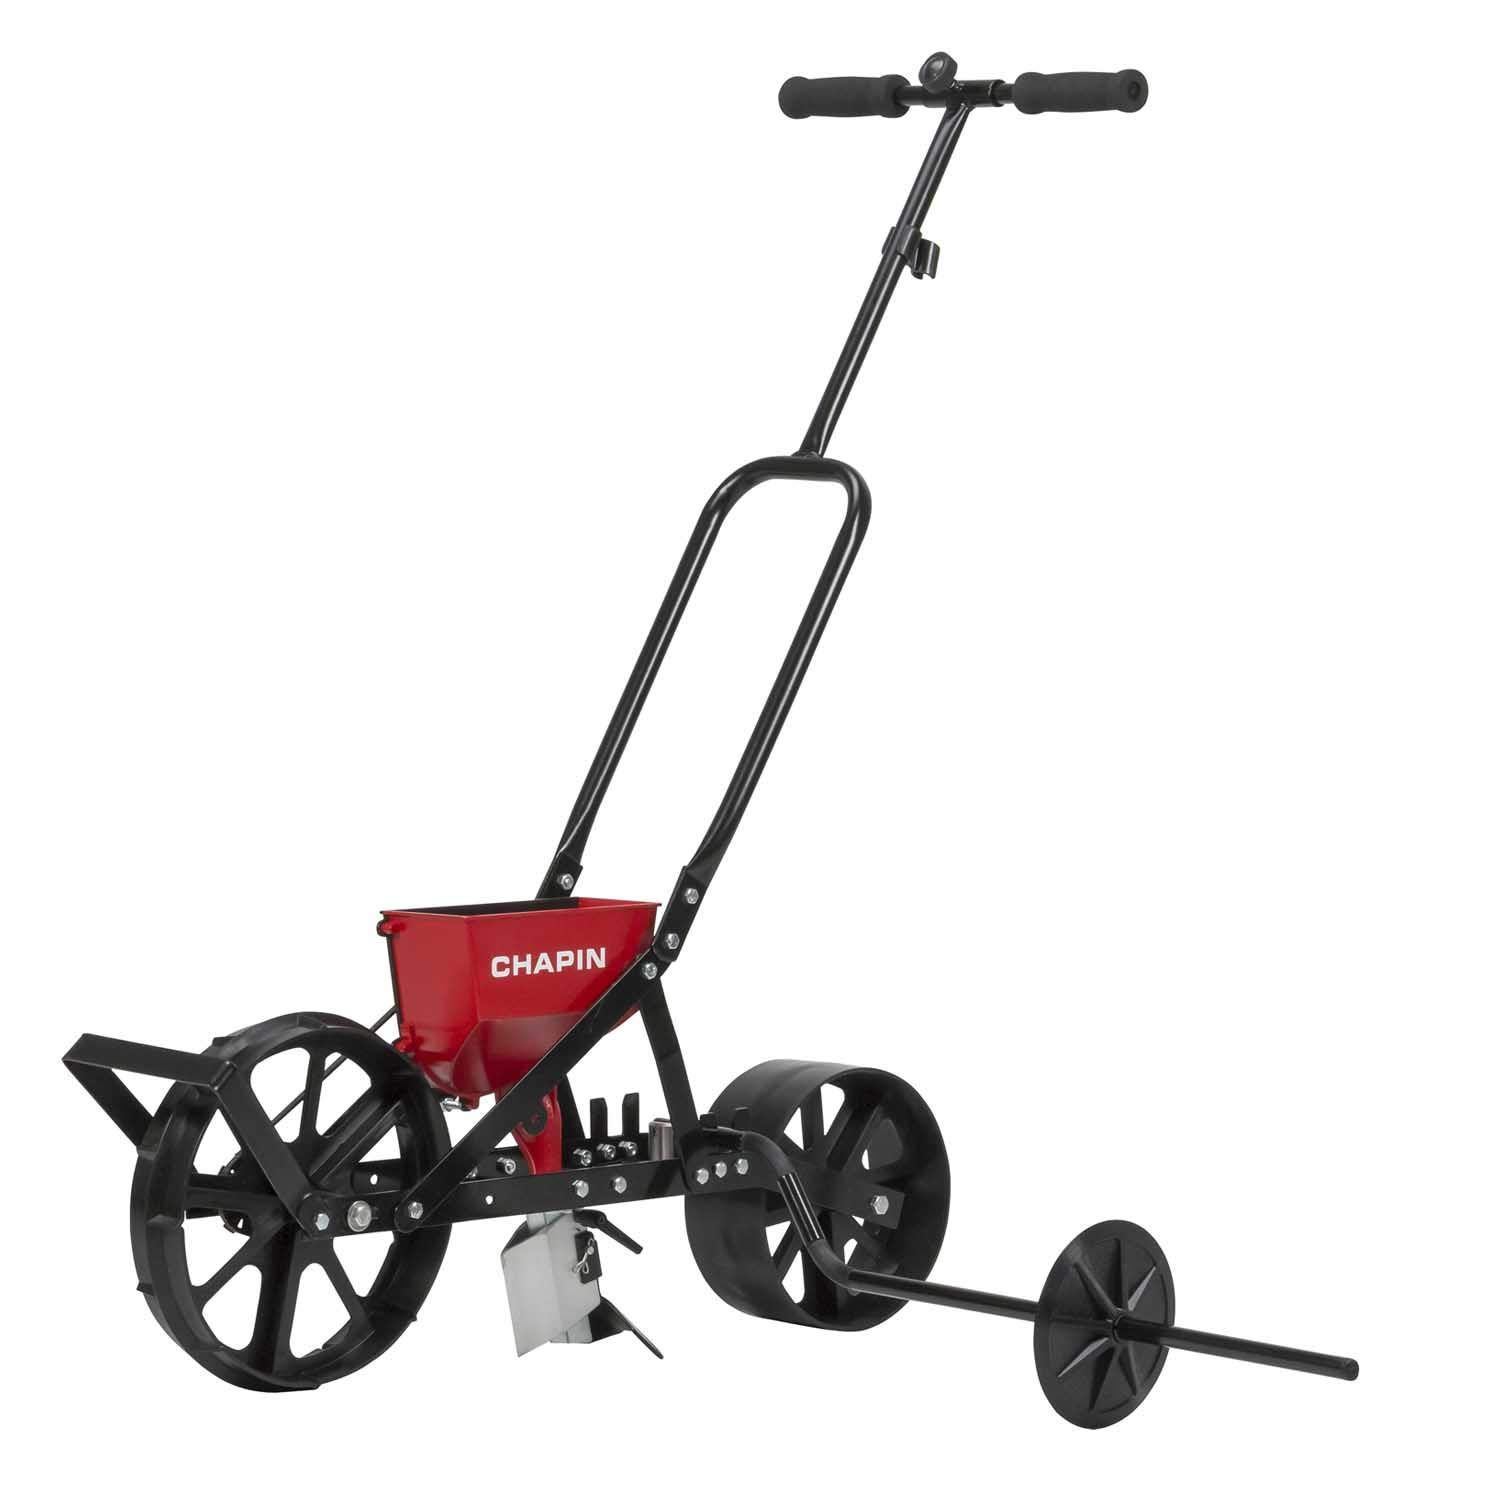 NEW Chapin Precision Garden Seeder with 6 Seed Plates